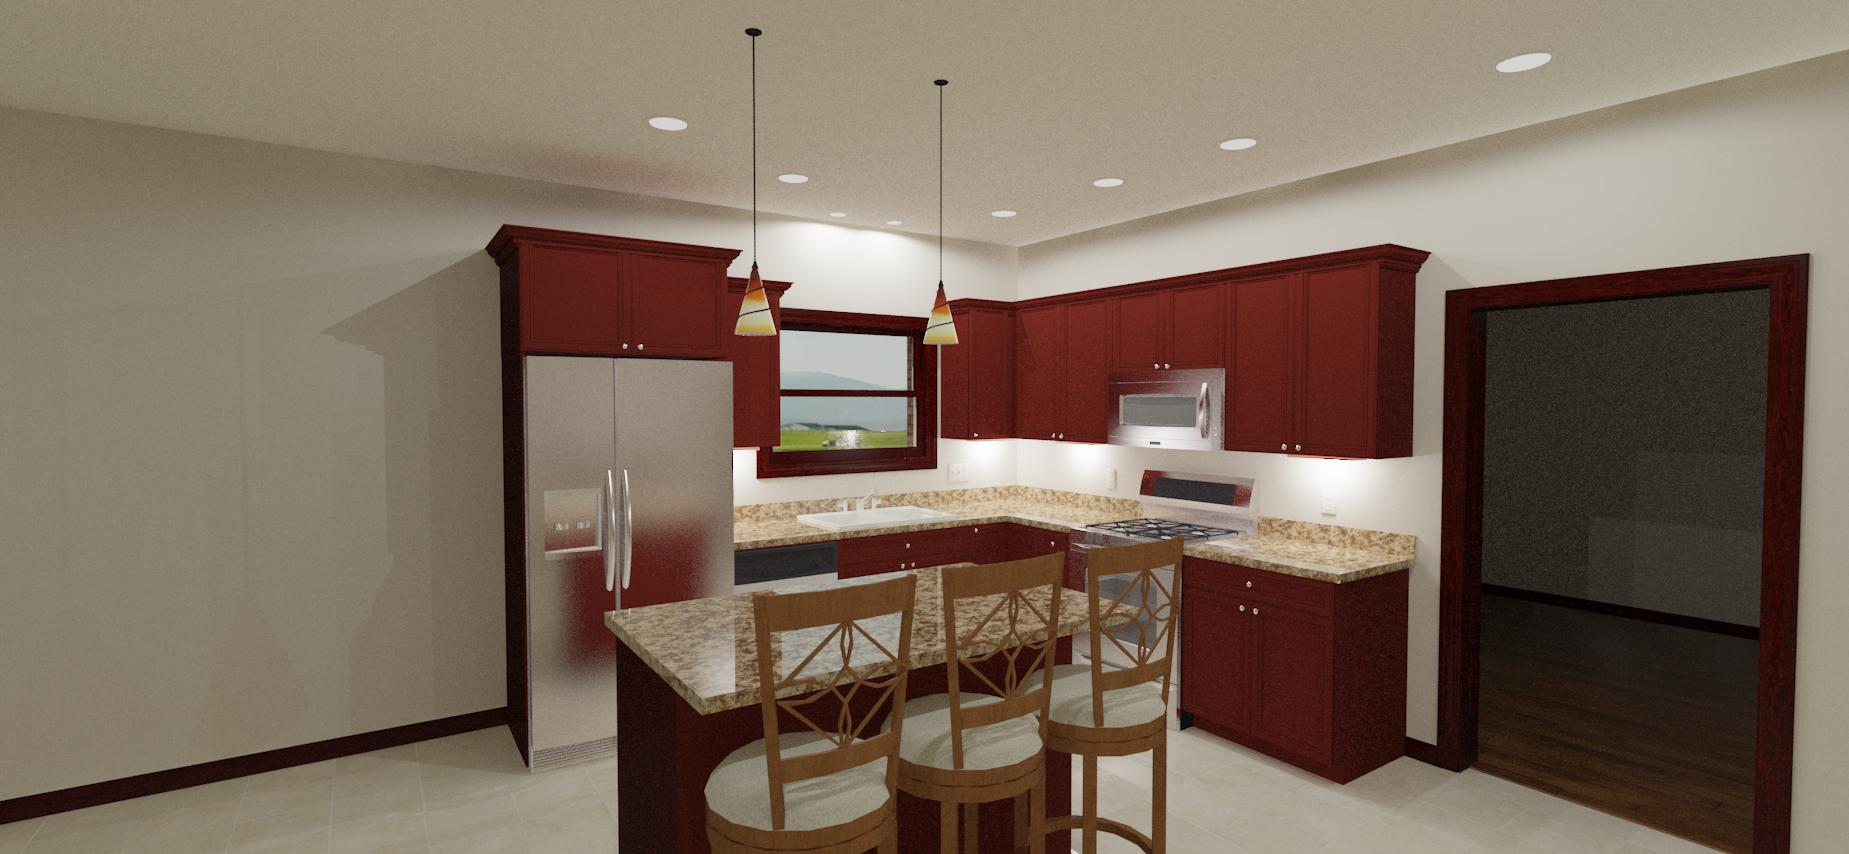 New Kitchen Recessed Lighting Layout  Electrician Talk